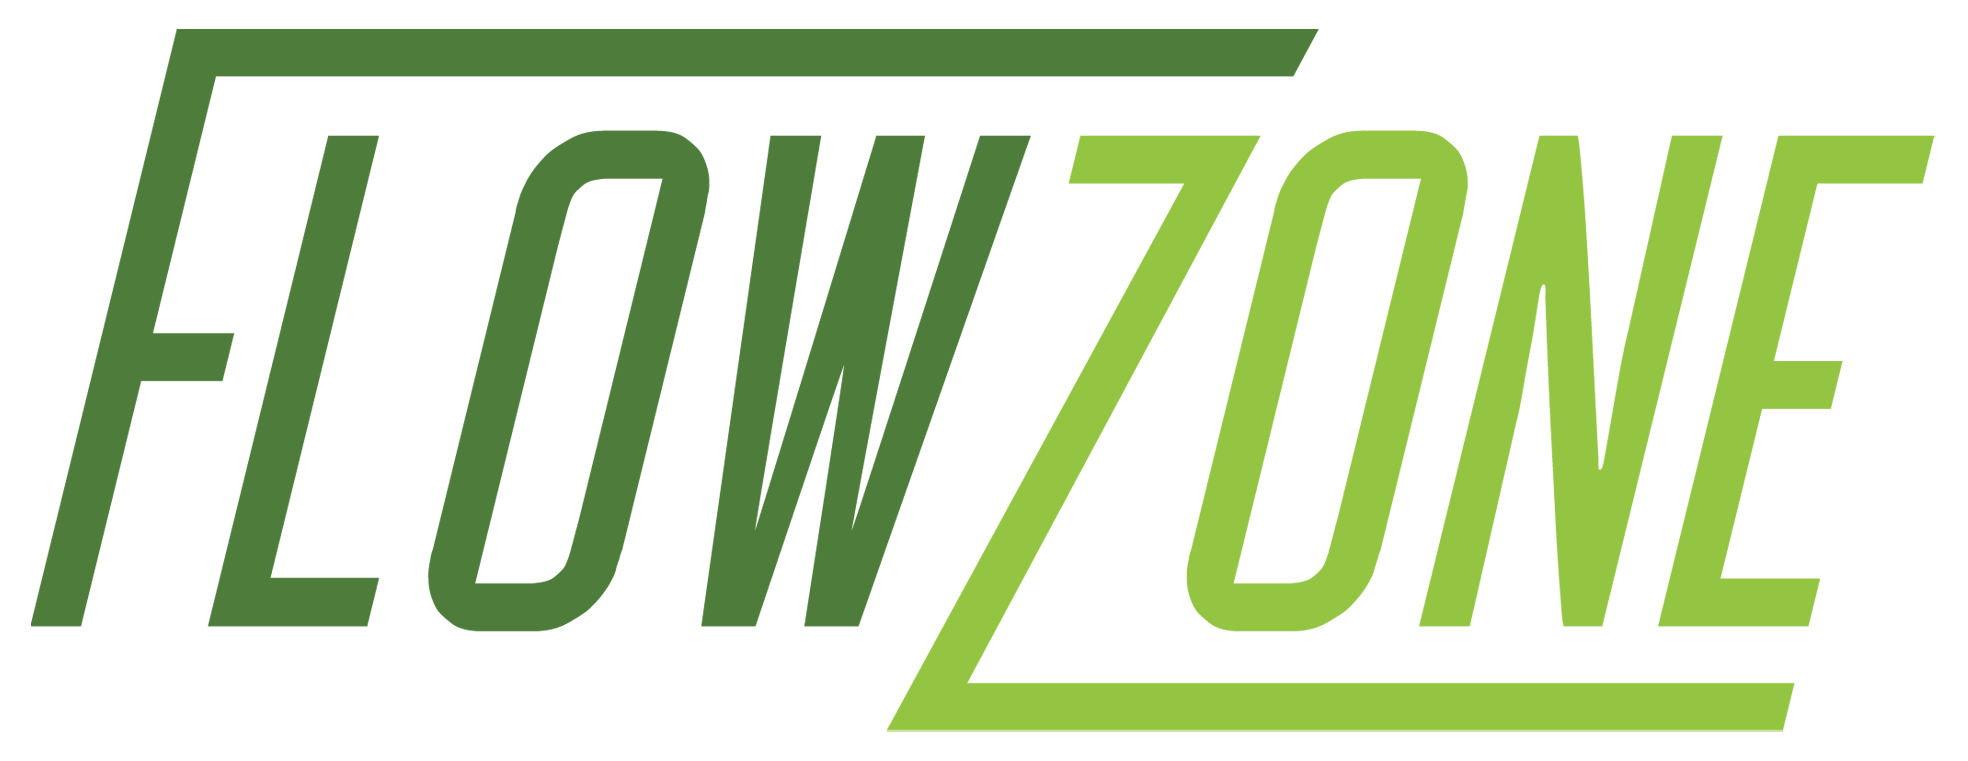 FlowZone logo with white border